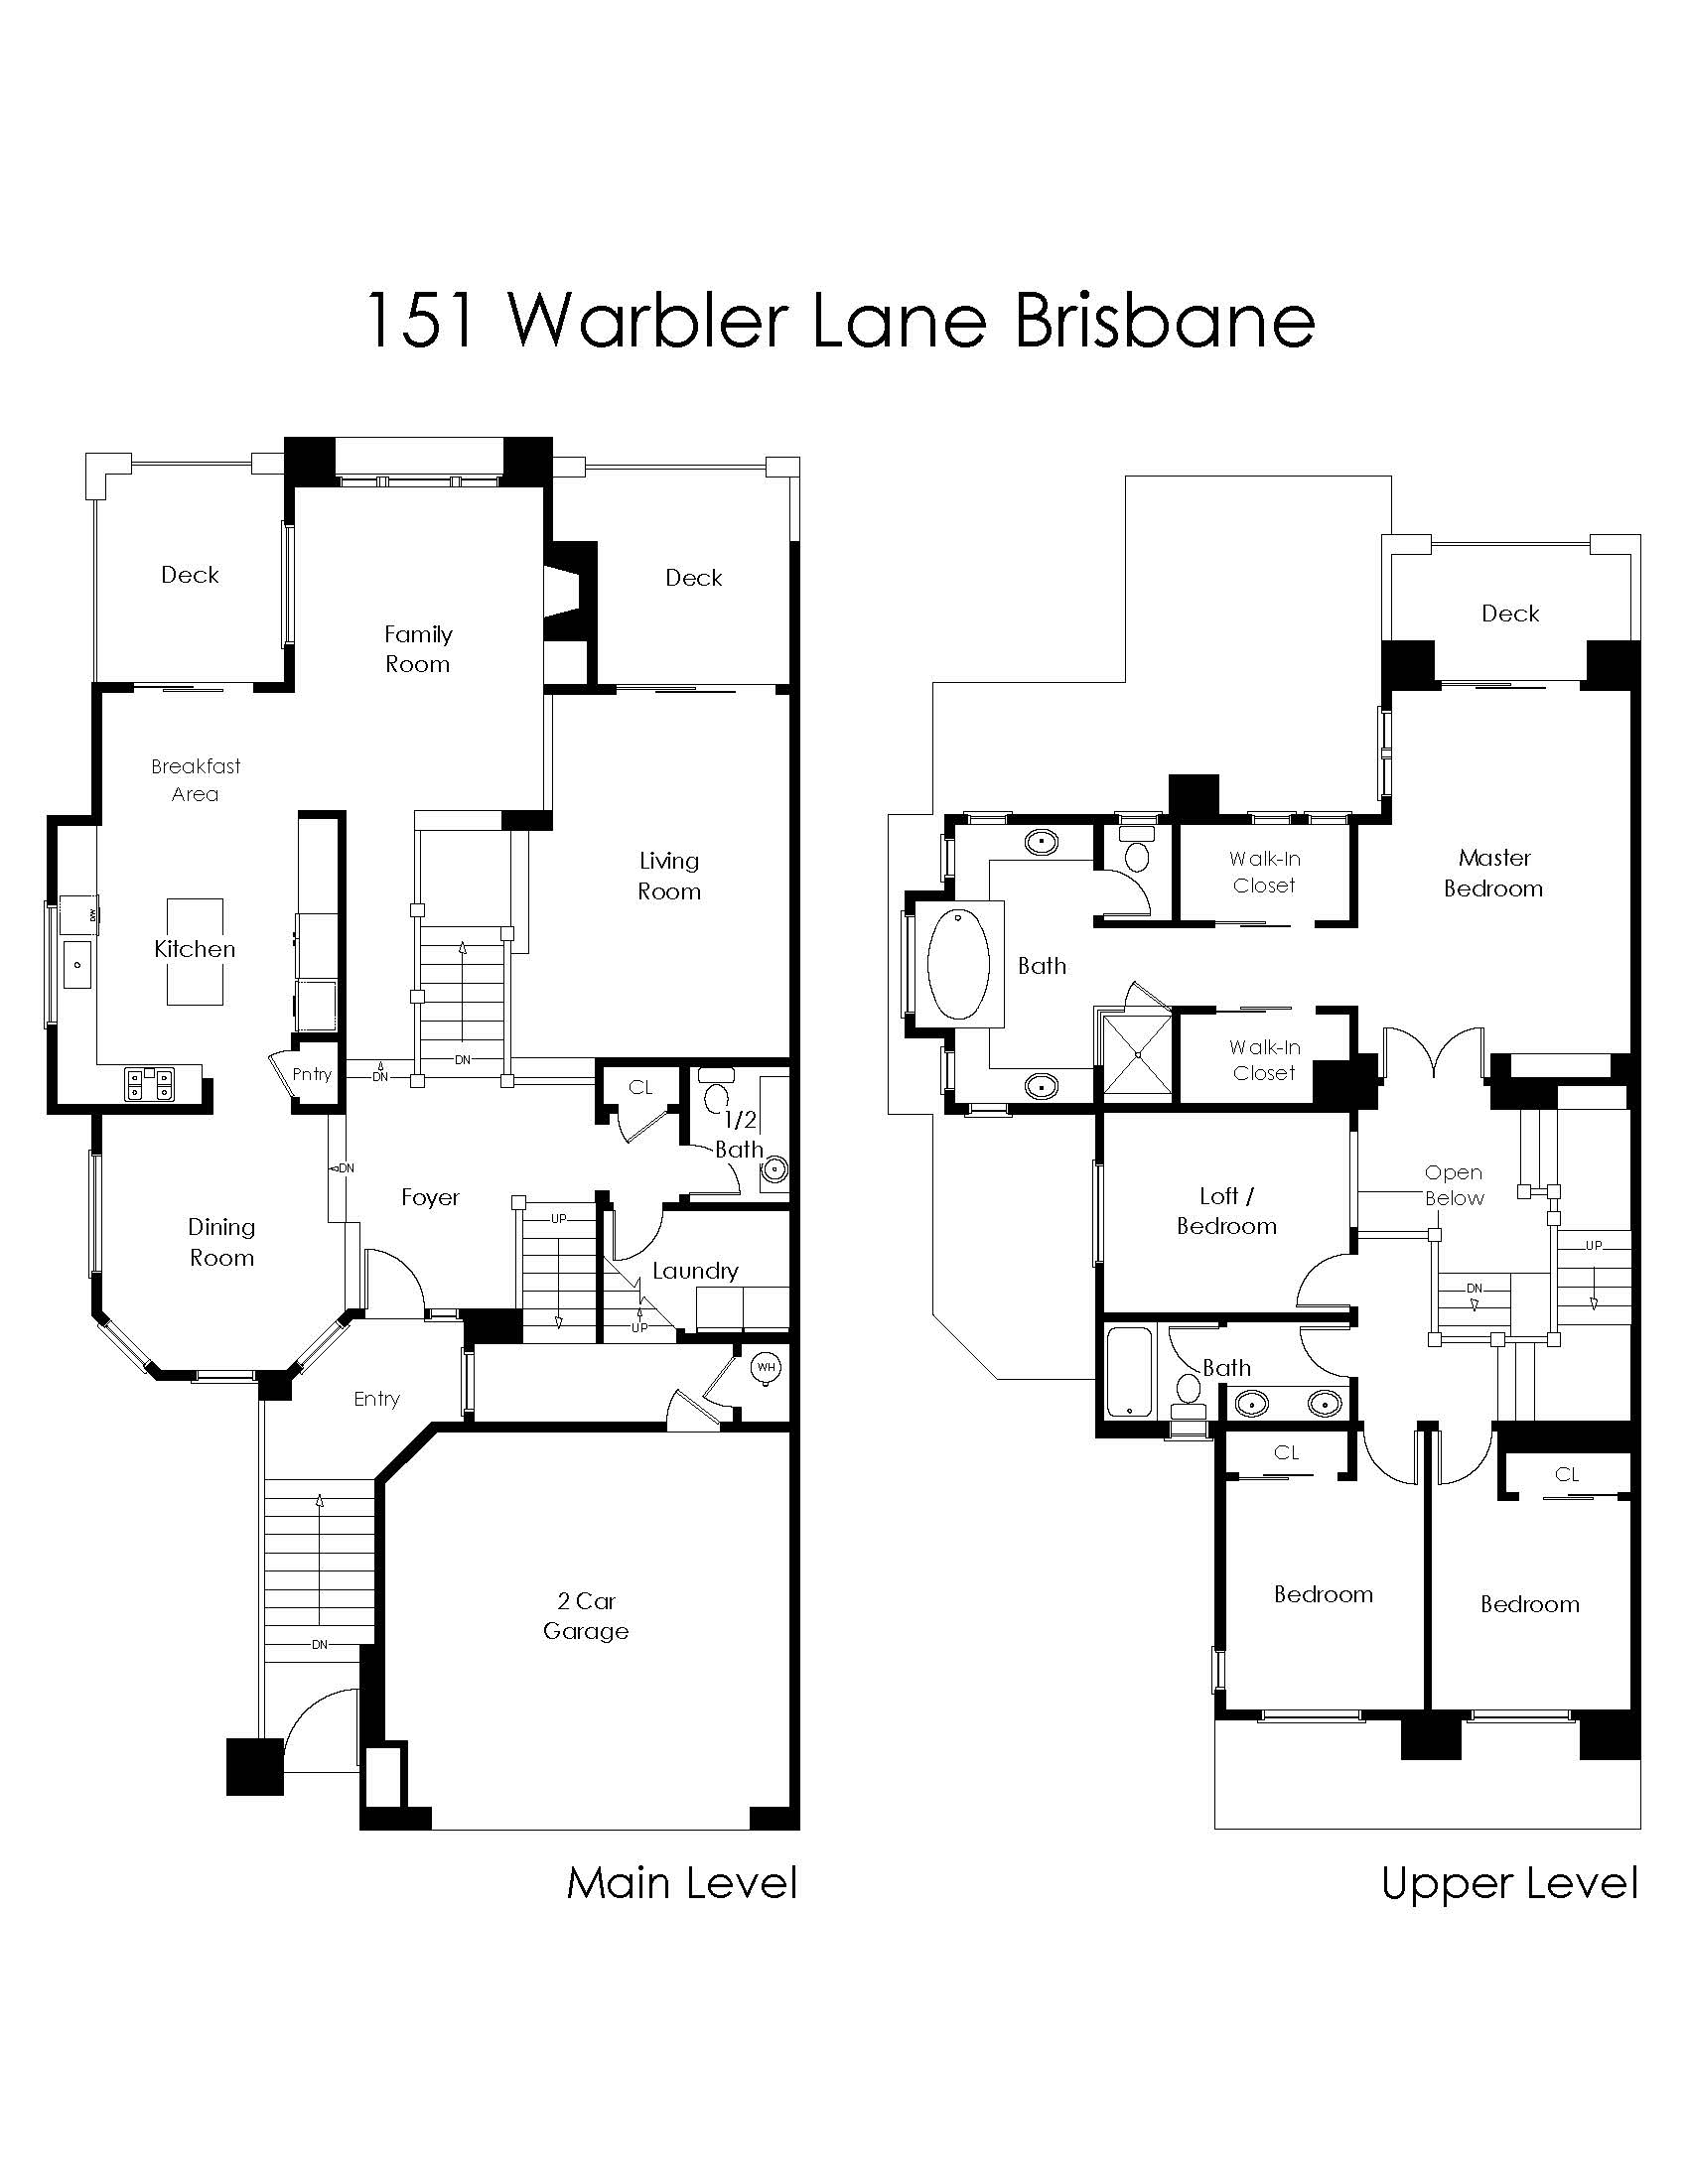 Floor Plan for 151 Warbler Lane, Brisbane.